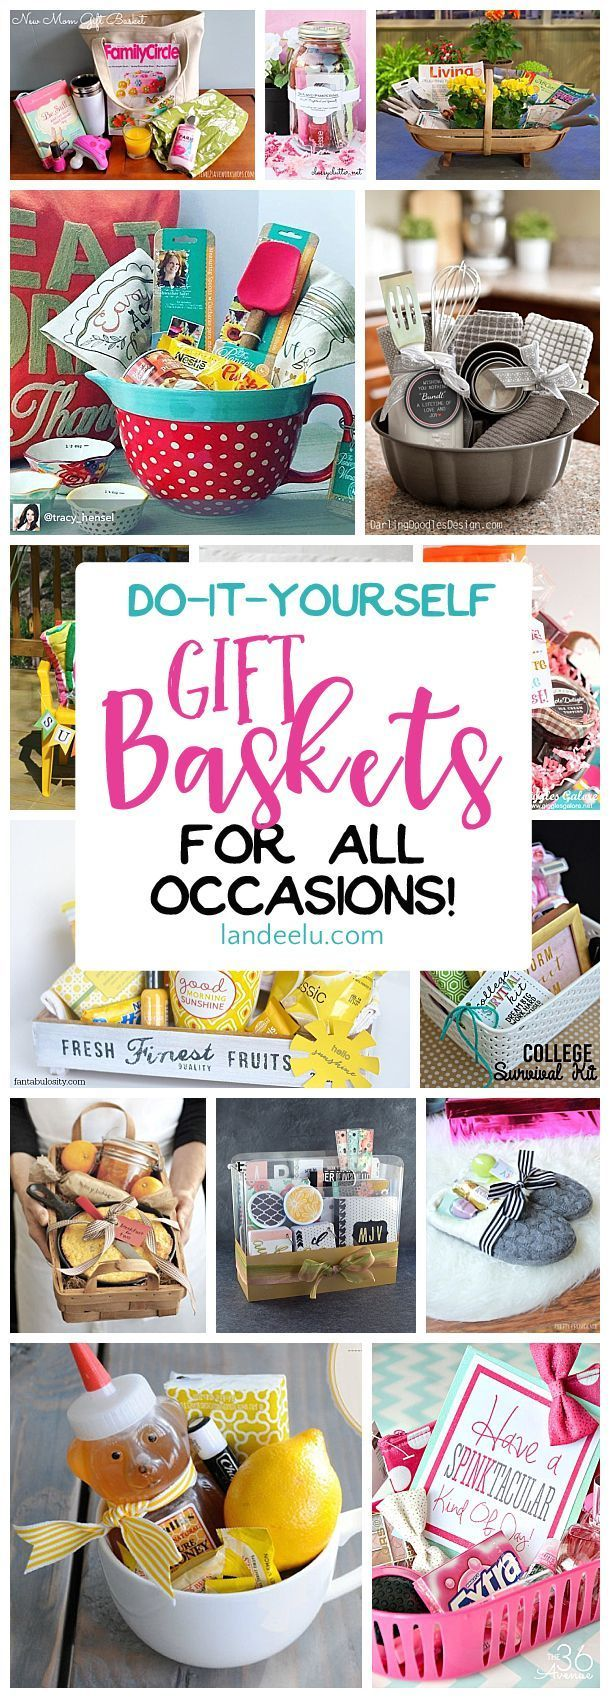 395 best gift ideas for women images on pinterest gift ideas do it yourself gift basket ideas for all occasions solutioingenieria Choice Image